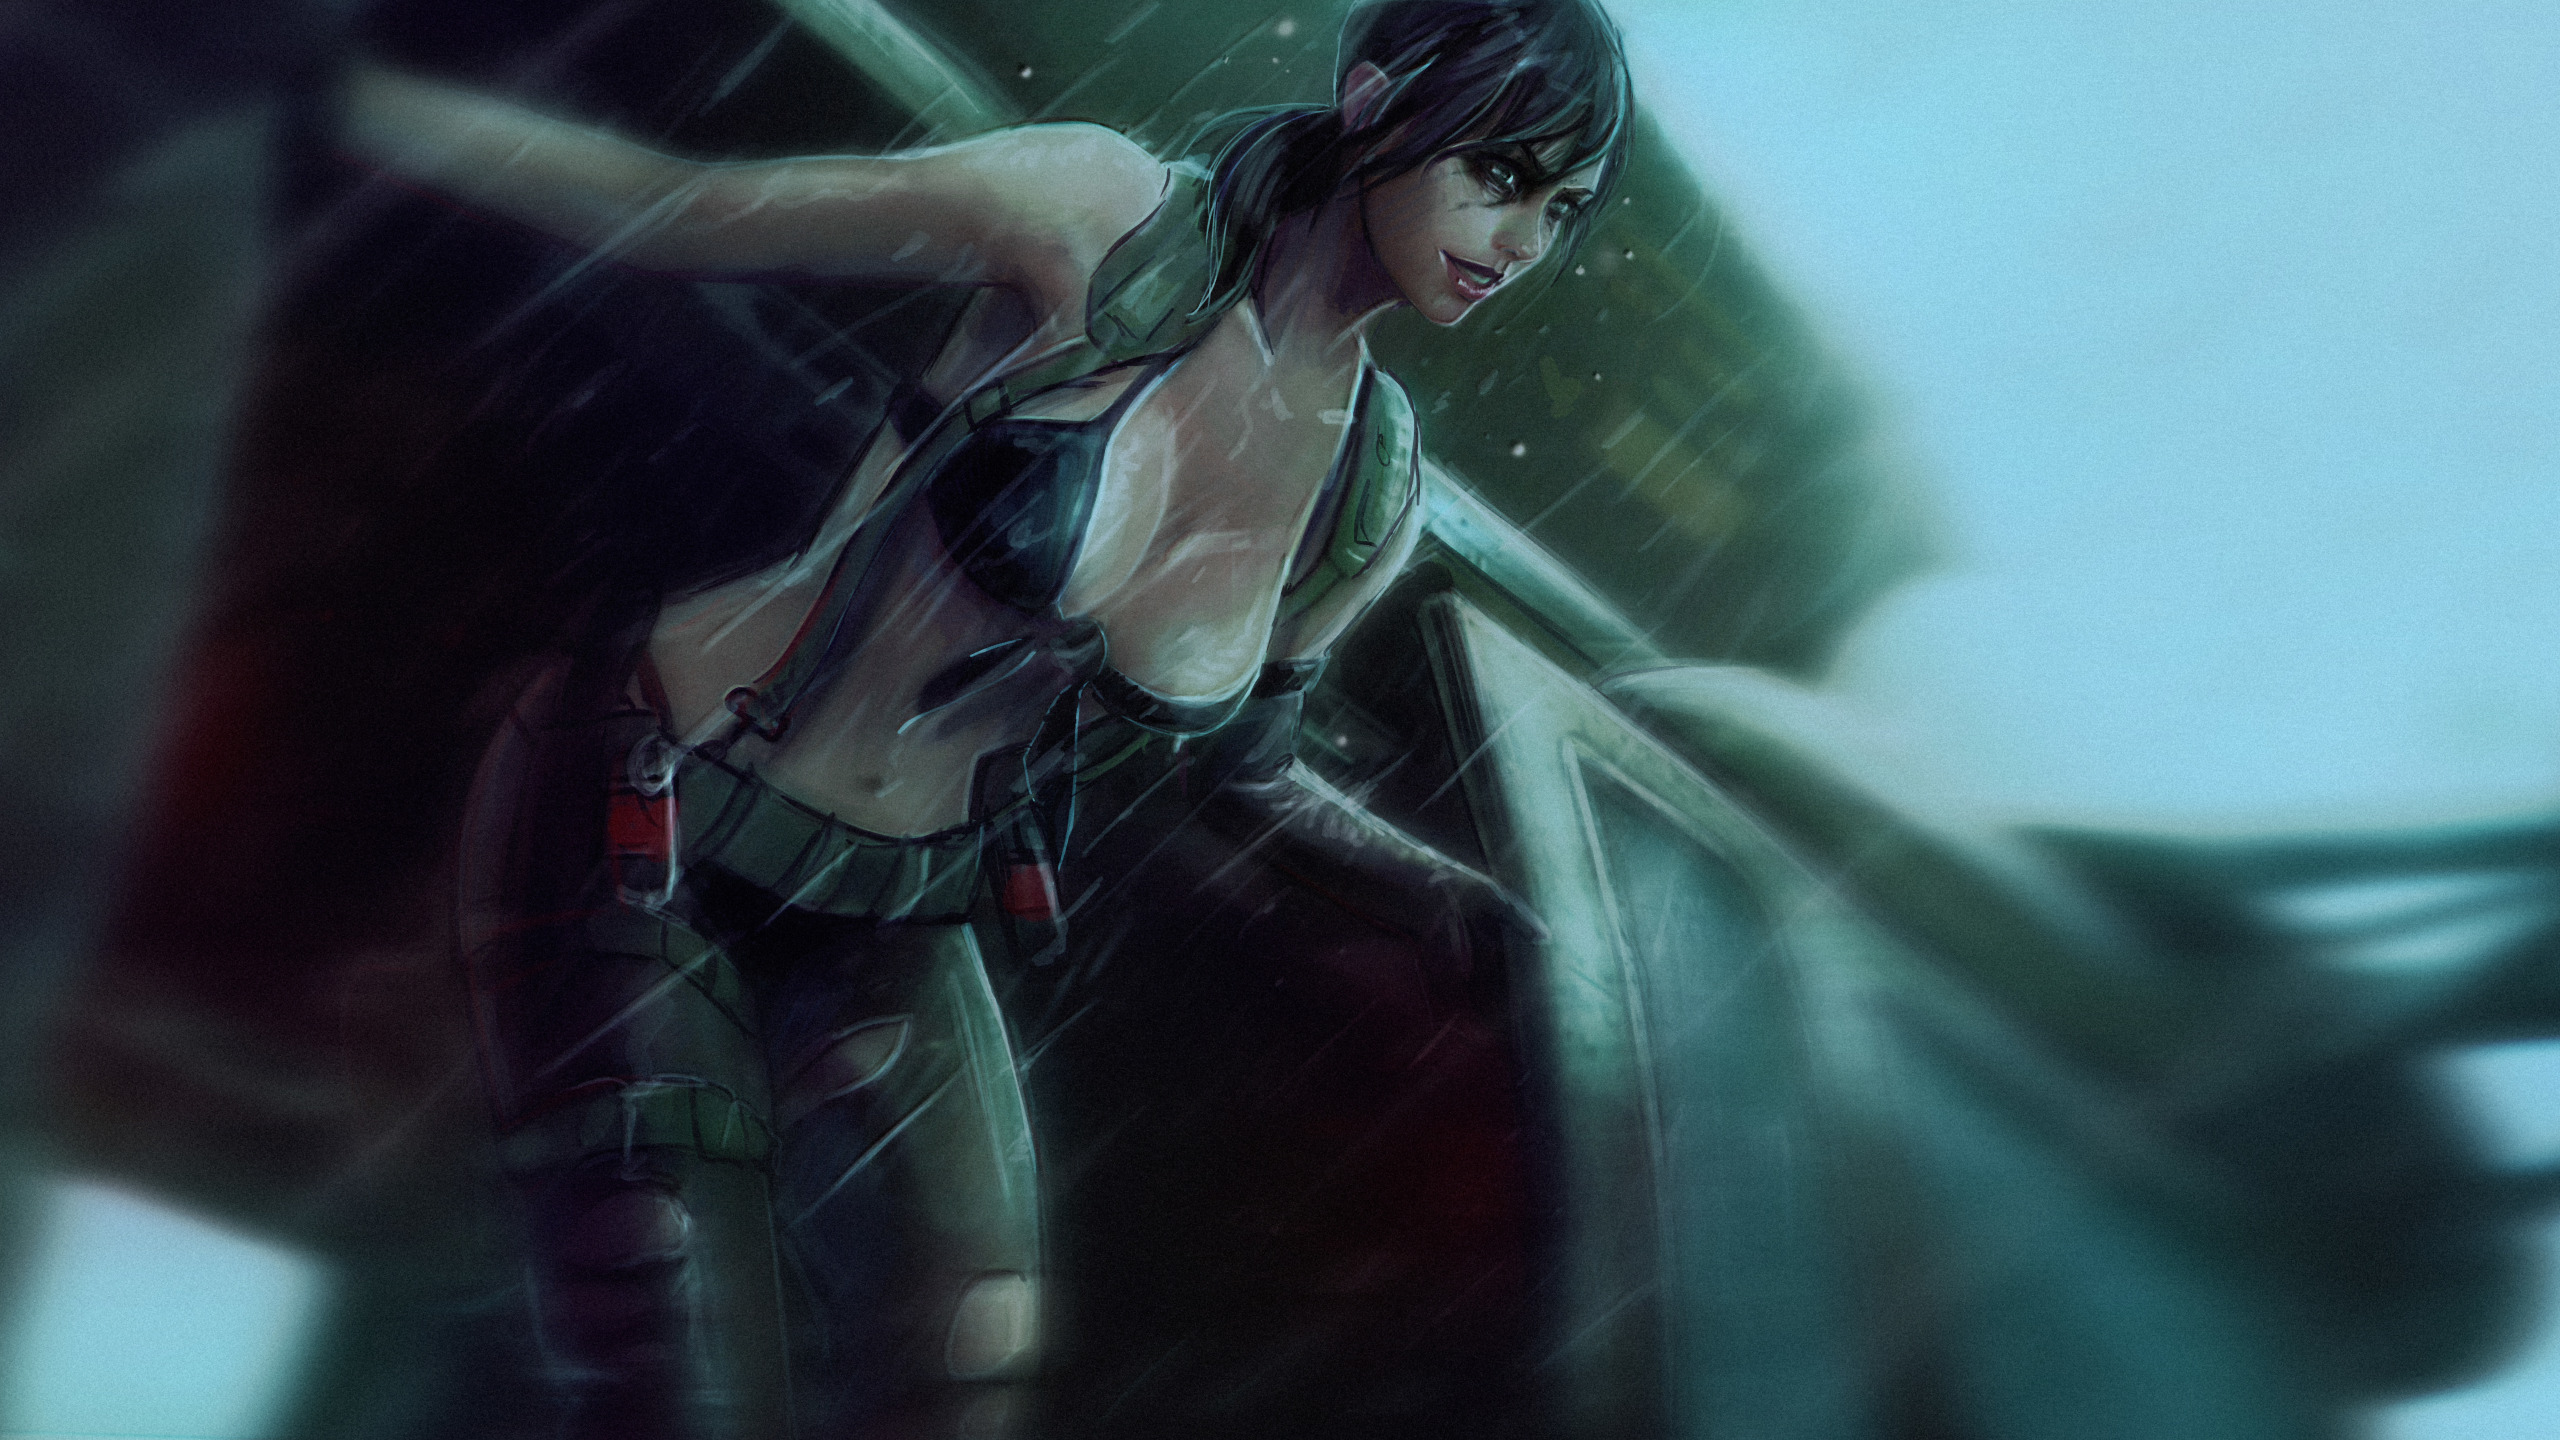 Download Wallpaper Chest Girl Rain Art Helicopter Sniper